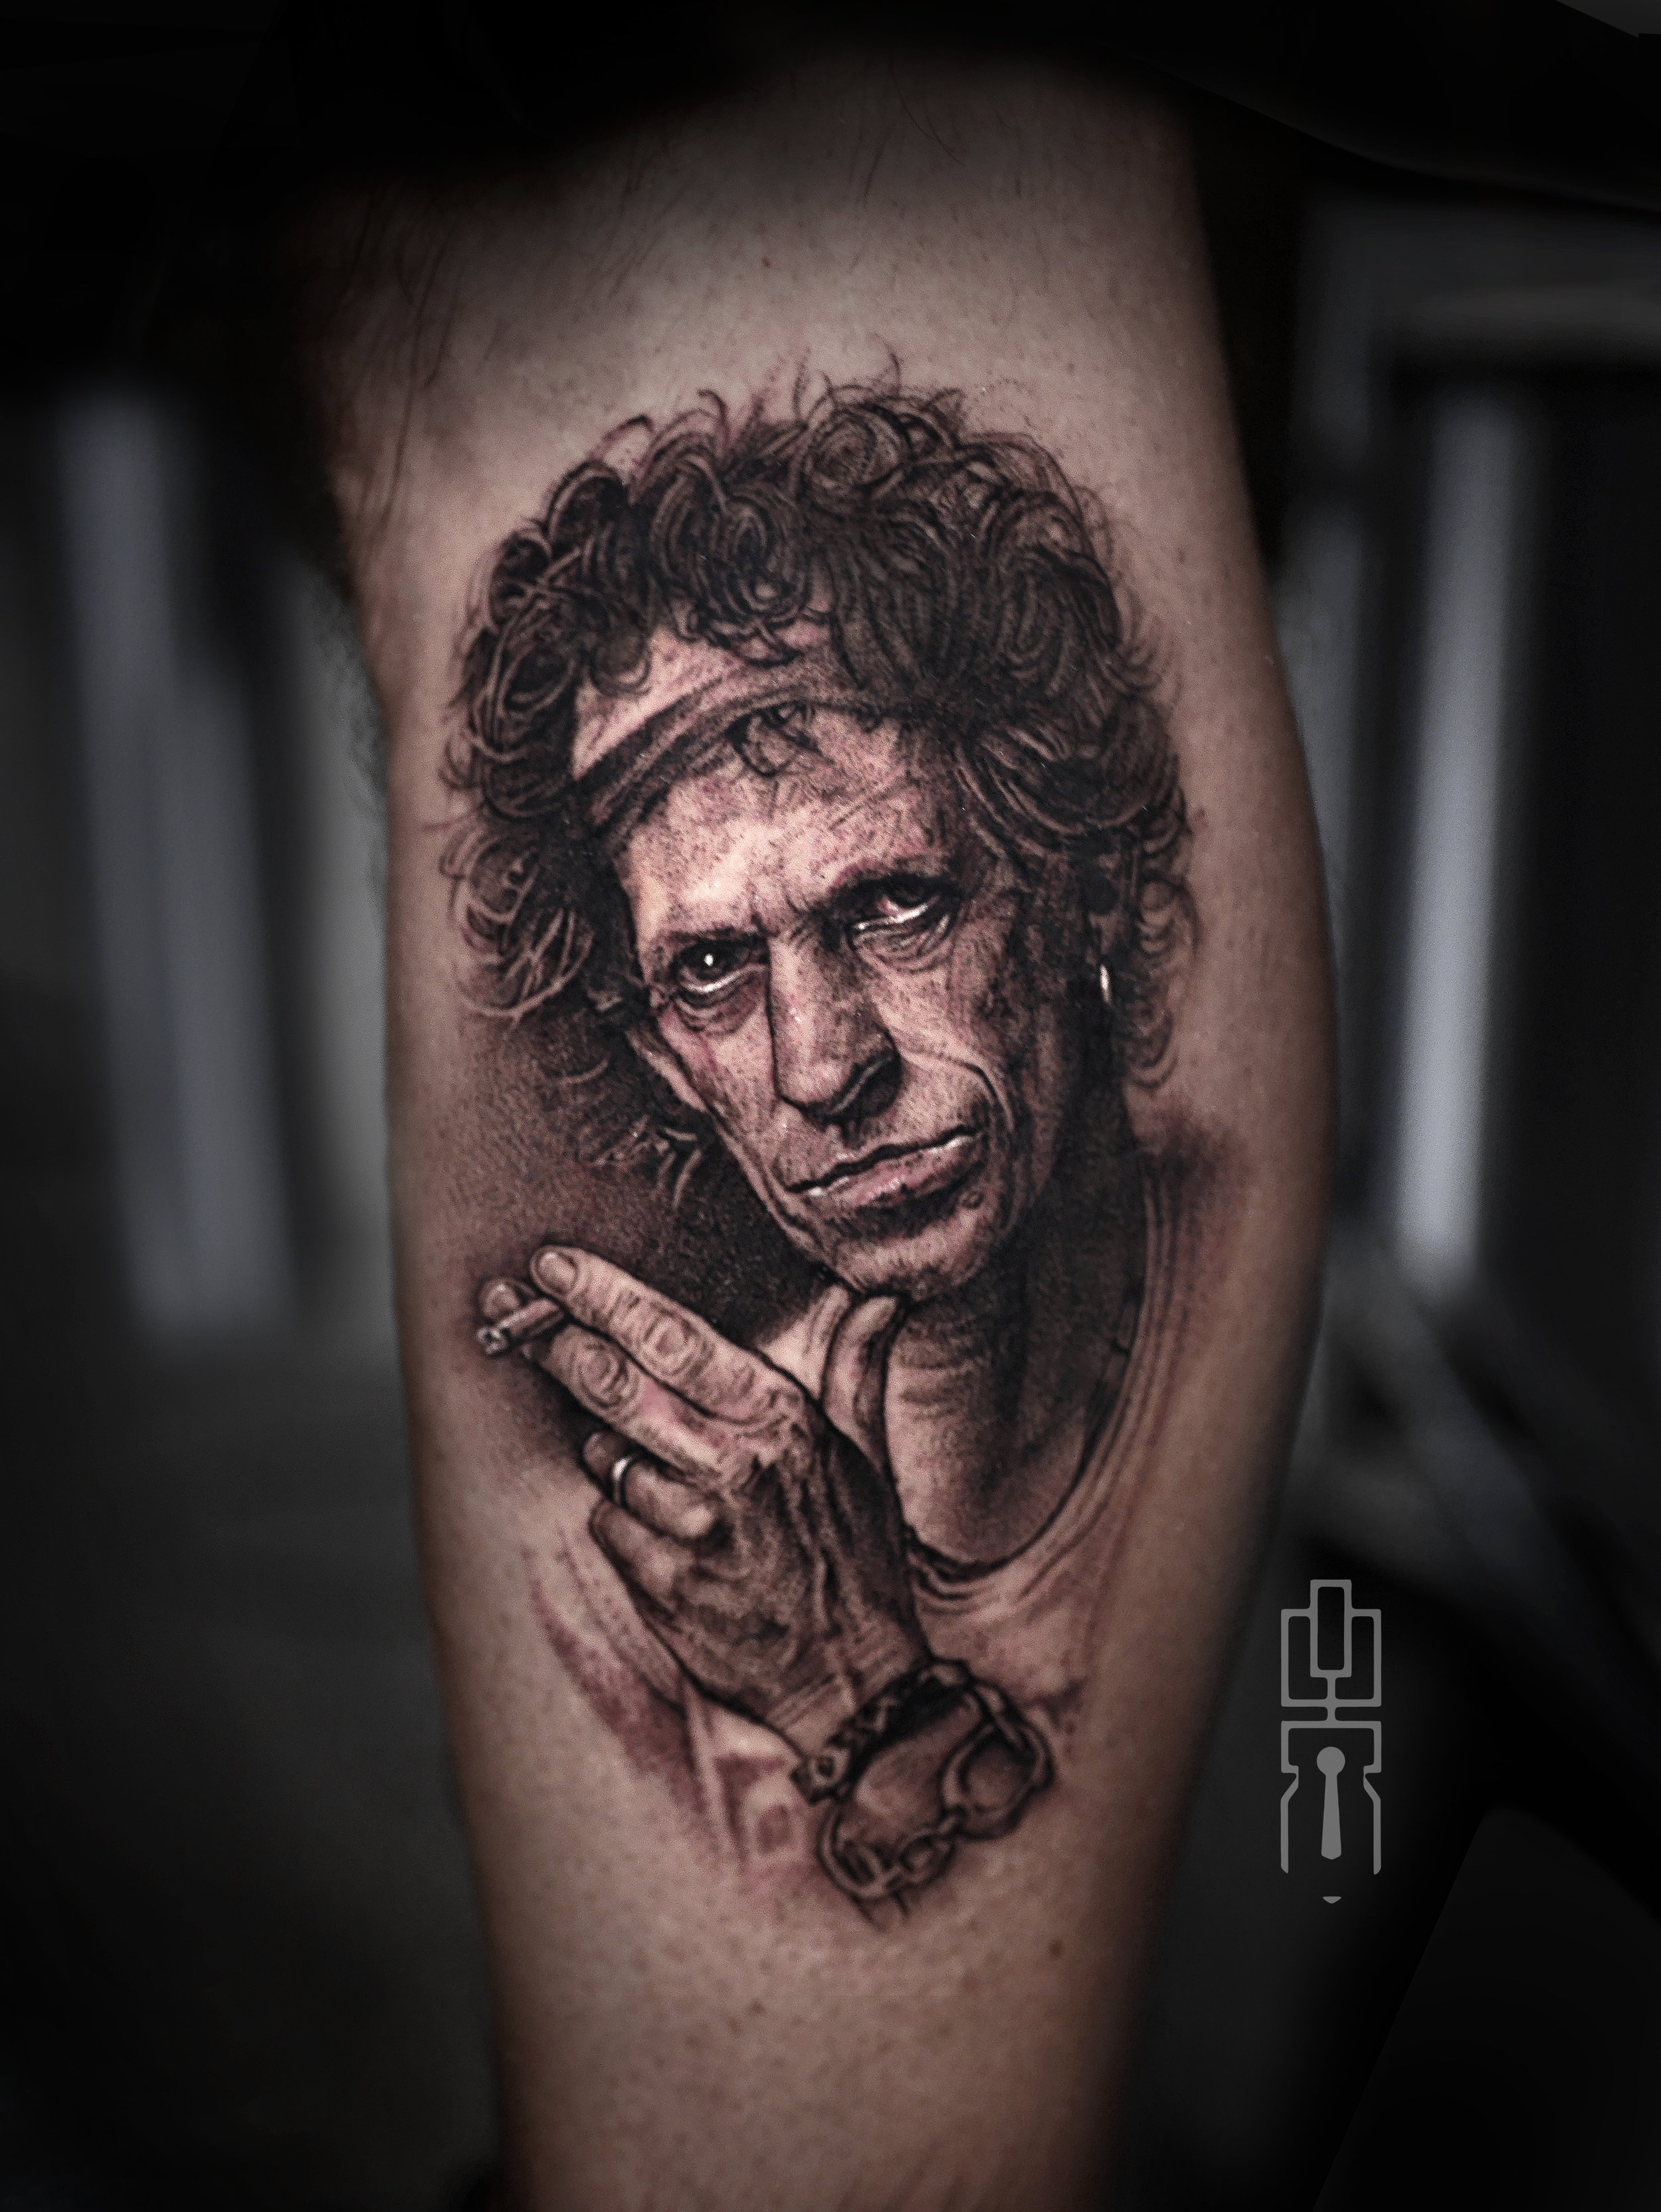 keith richards black and grey rolling stones tattoo.jpg